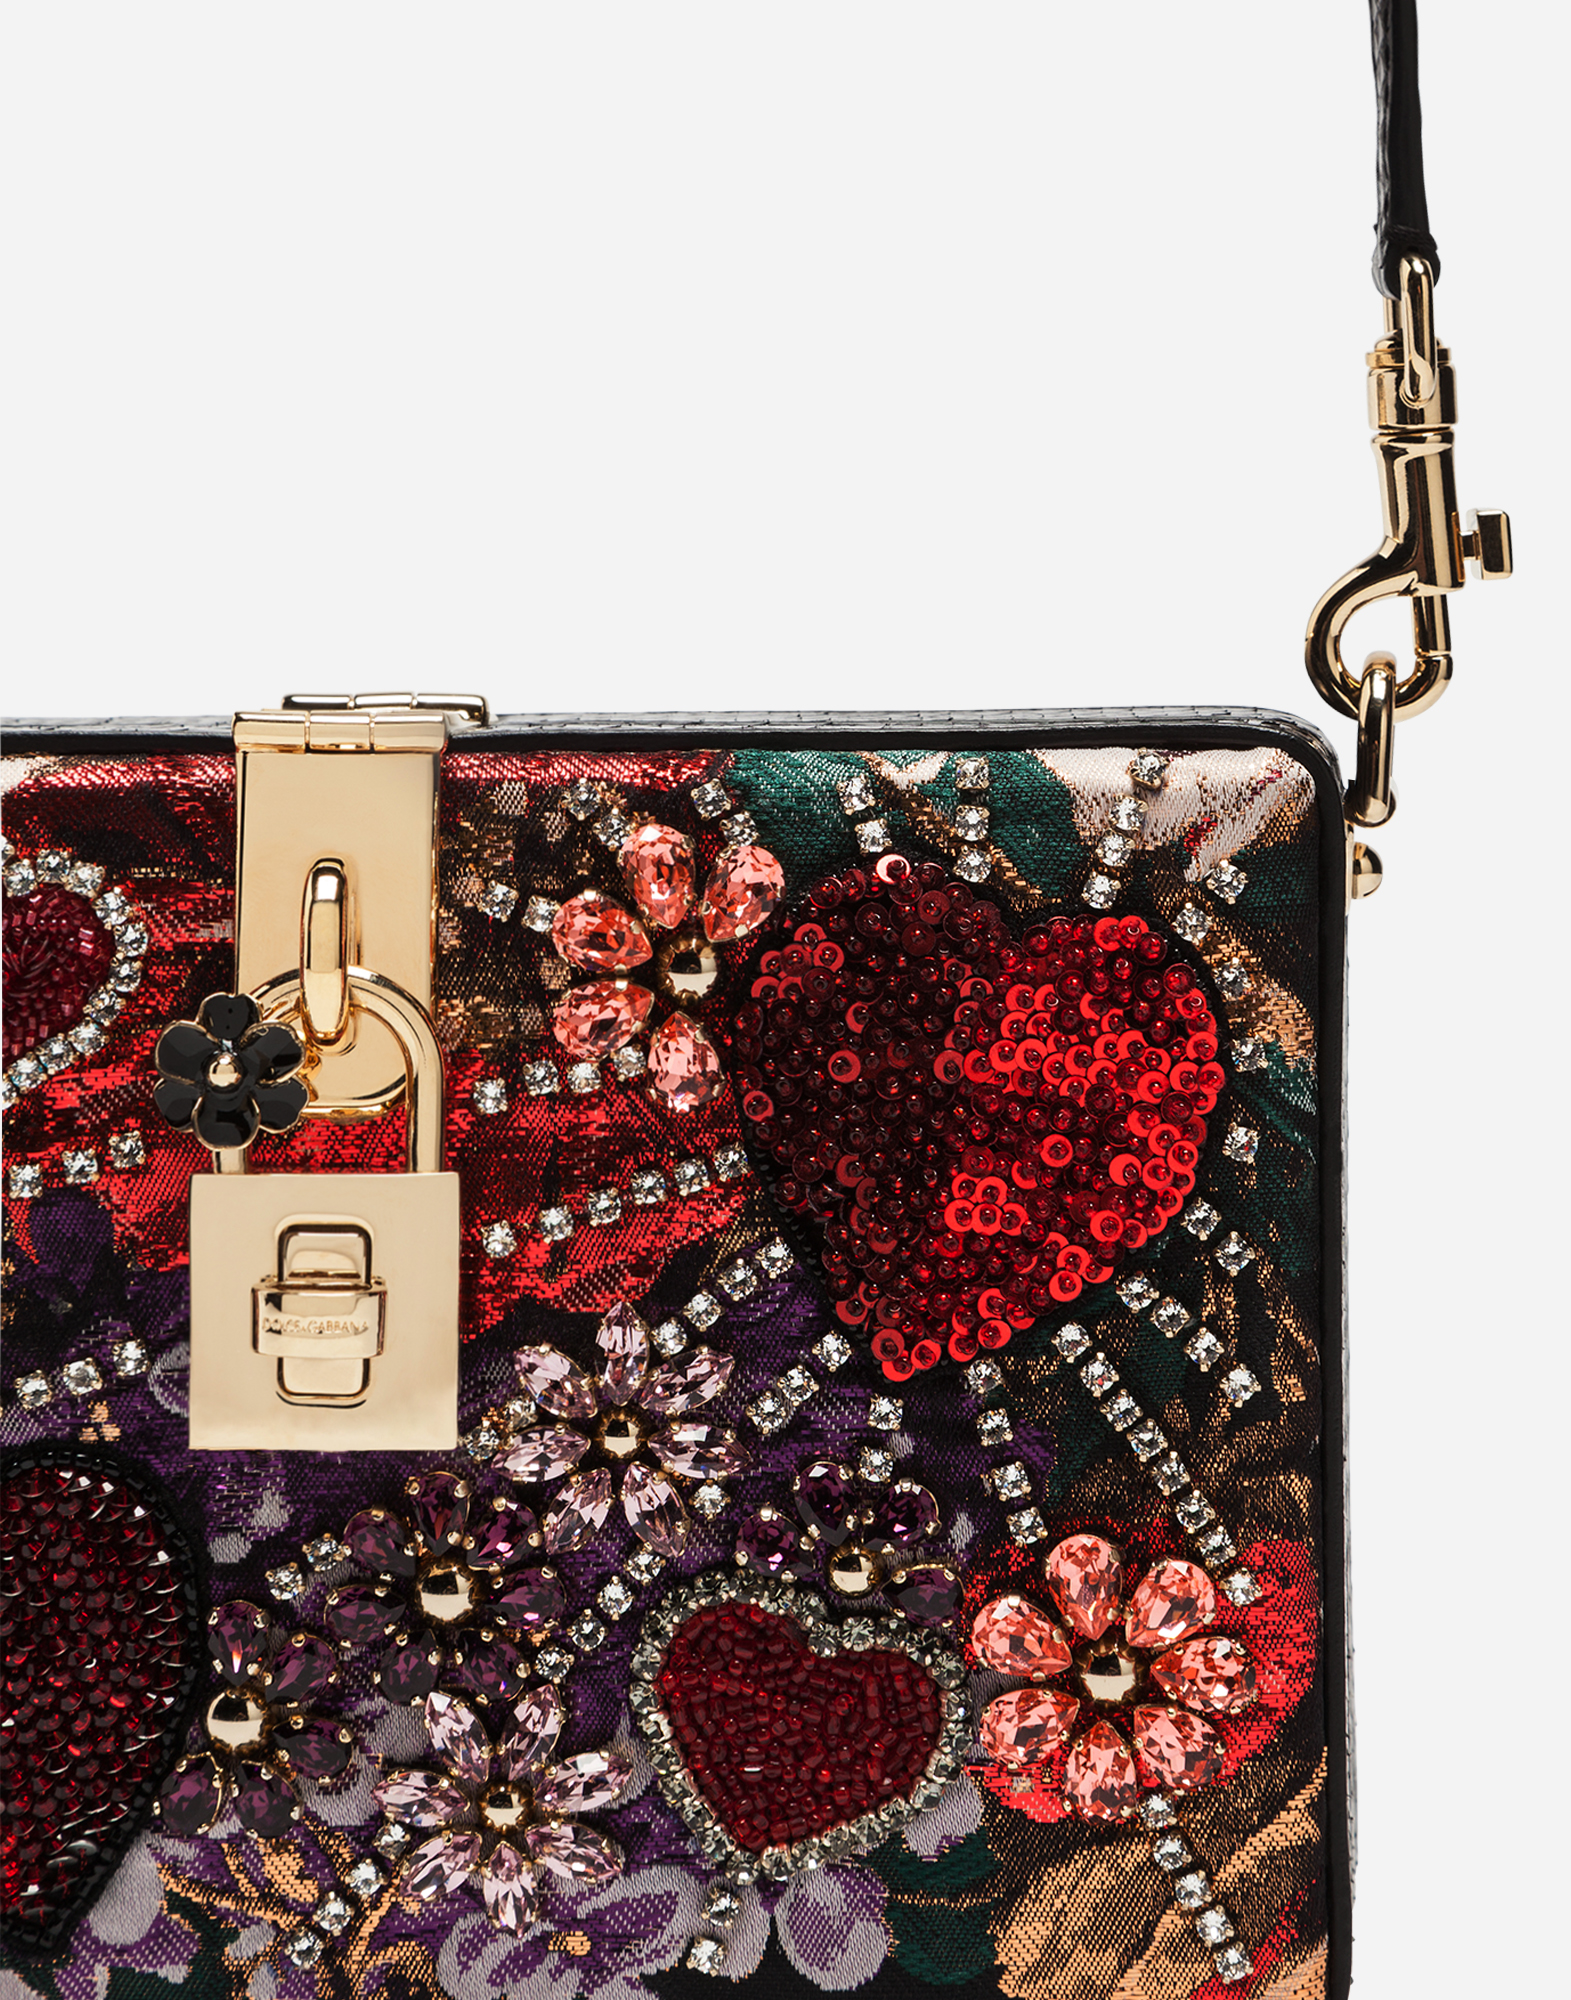 Dolce&Gabbana DOLCE BOX CLUTCH IN LUREX JACQUARD AND AYERS SNAKESKIN